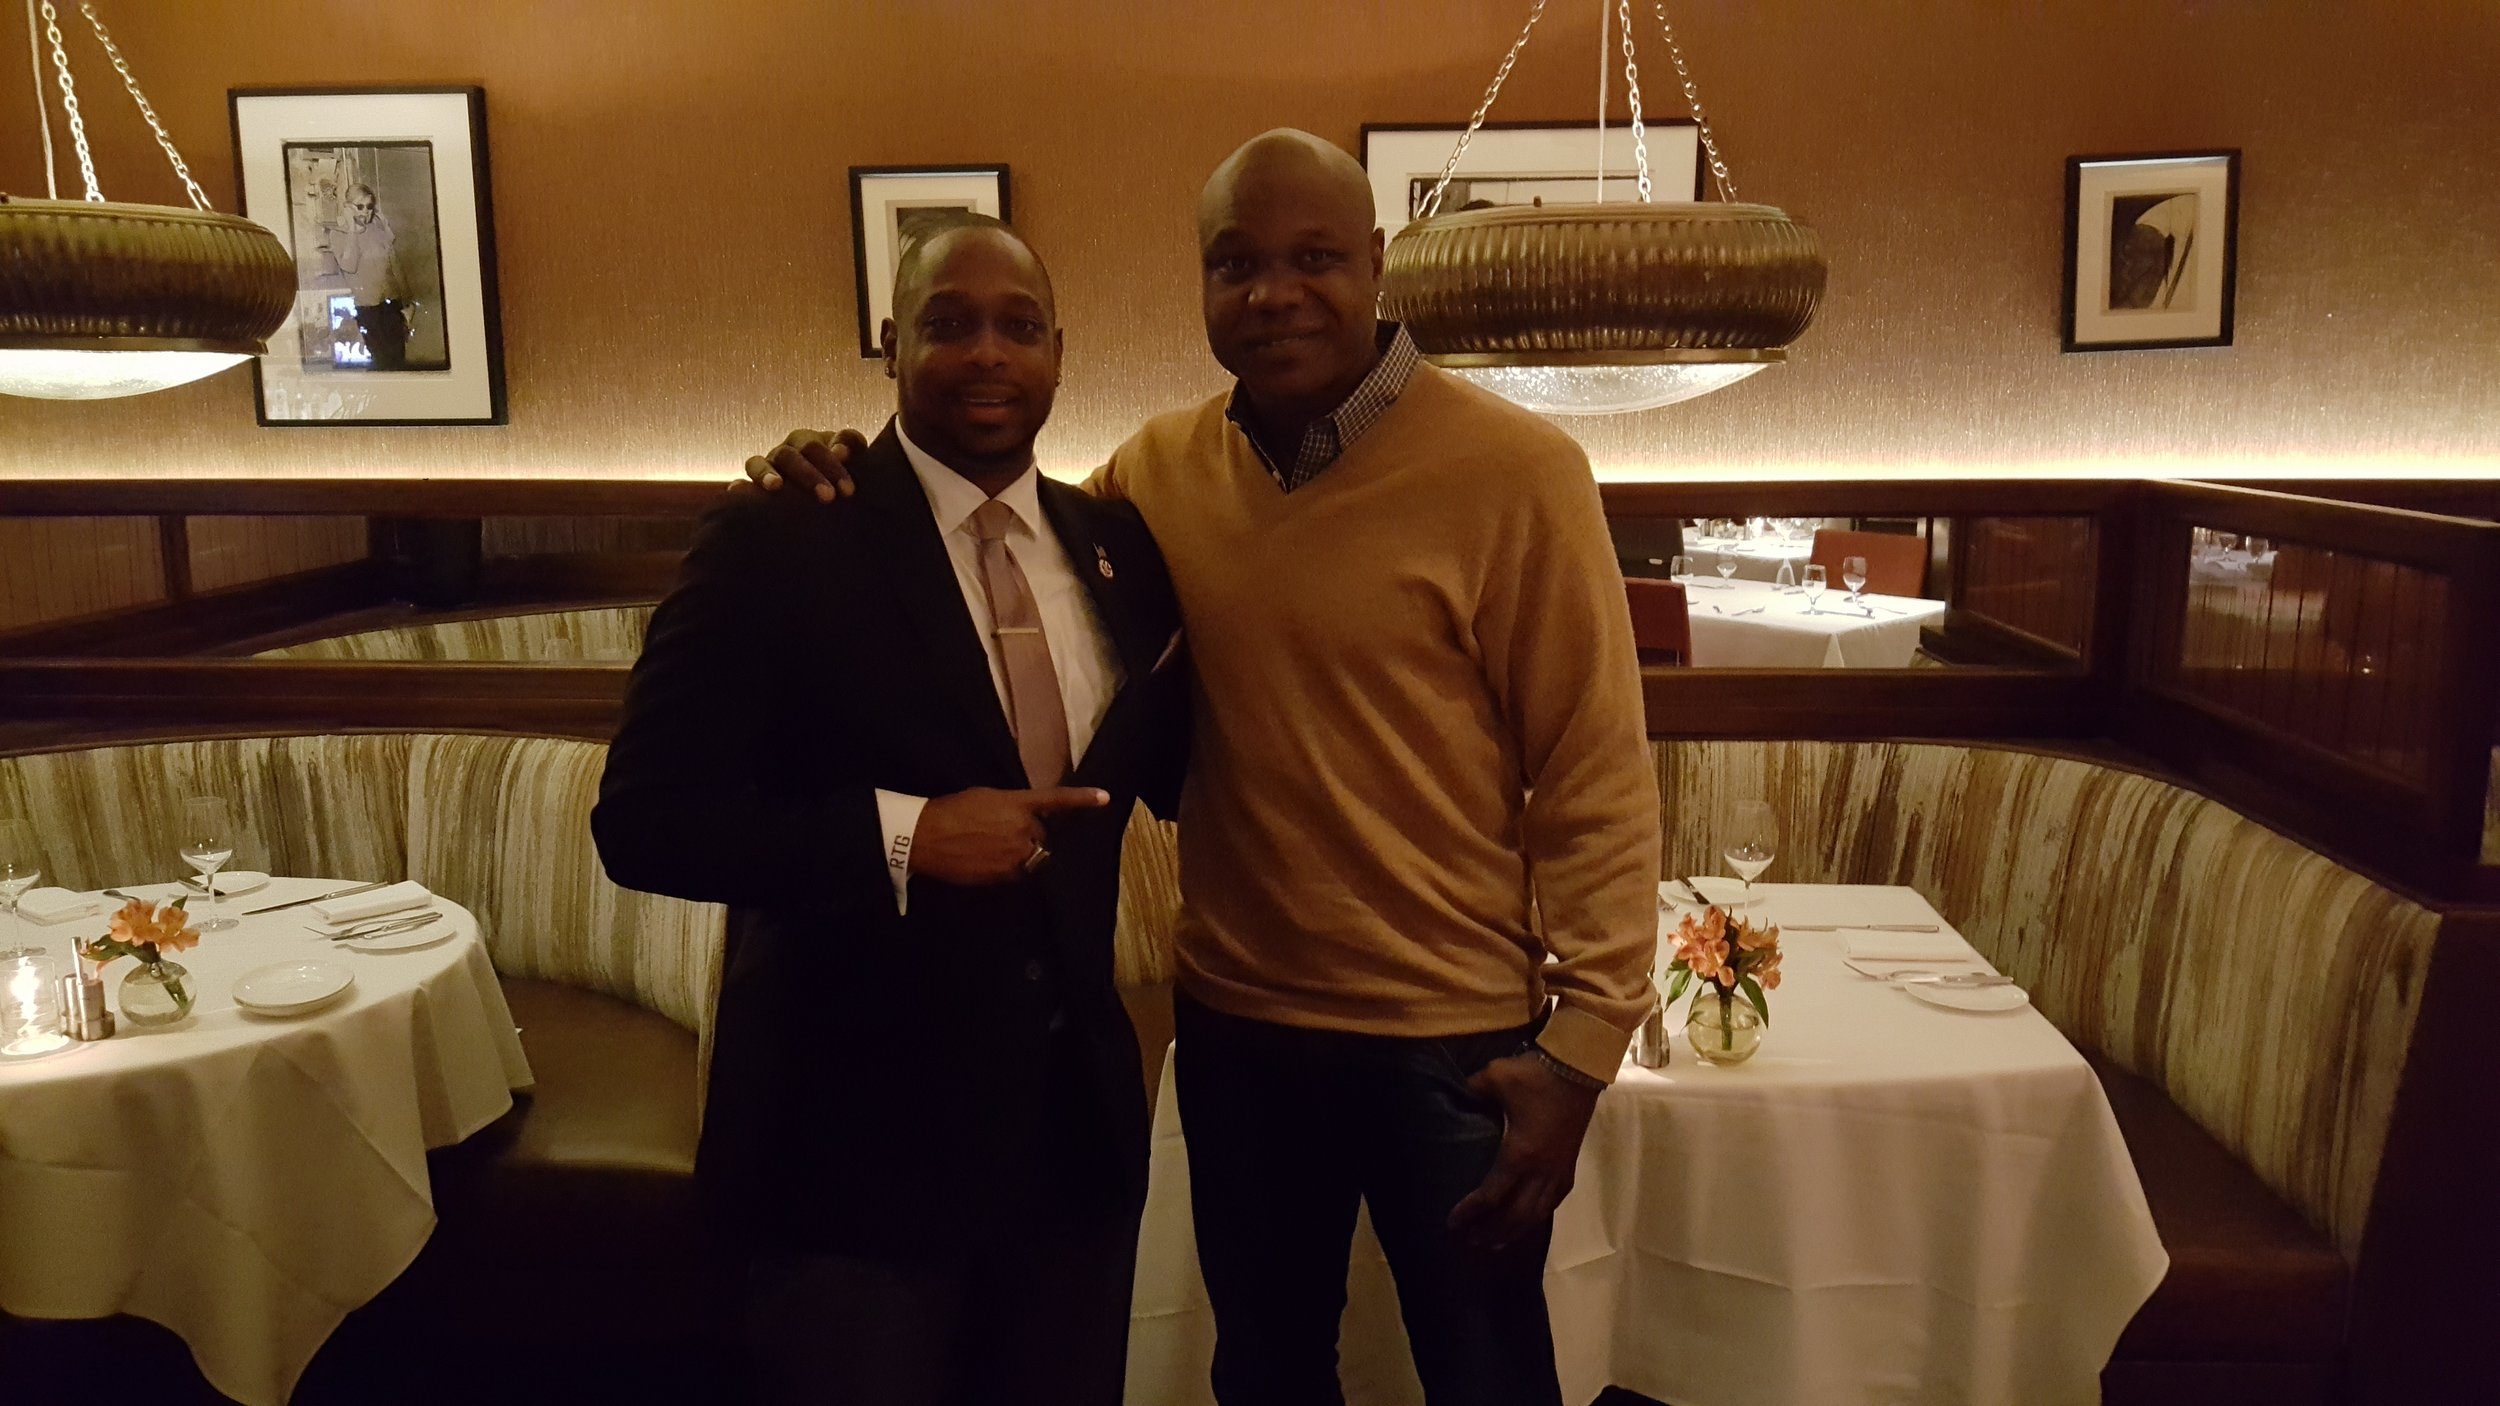 Robert T. Green discussing business with former NFL All Pro Keith Bullock